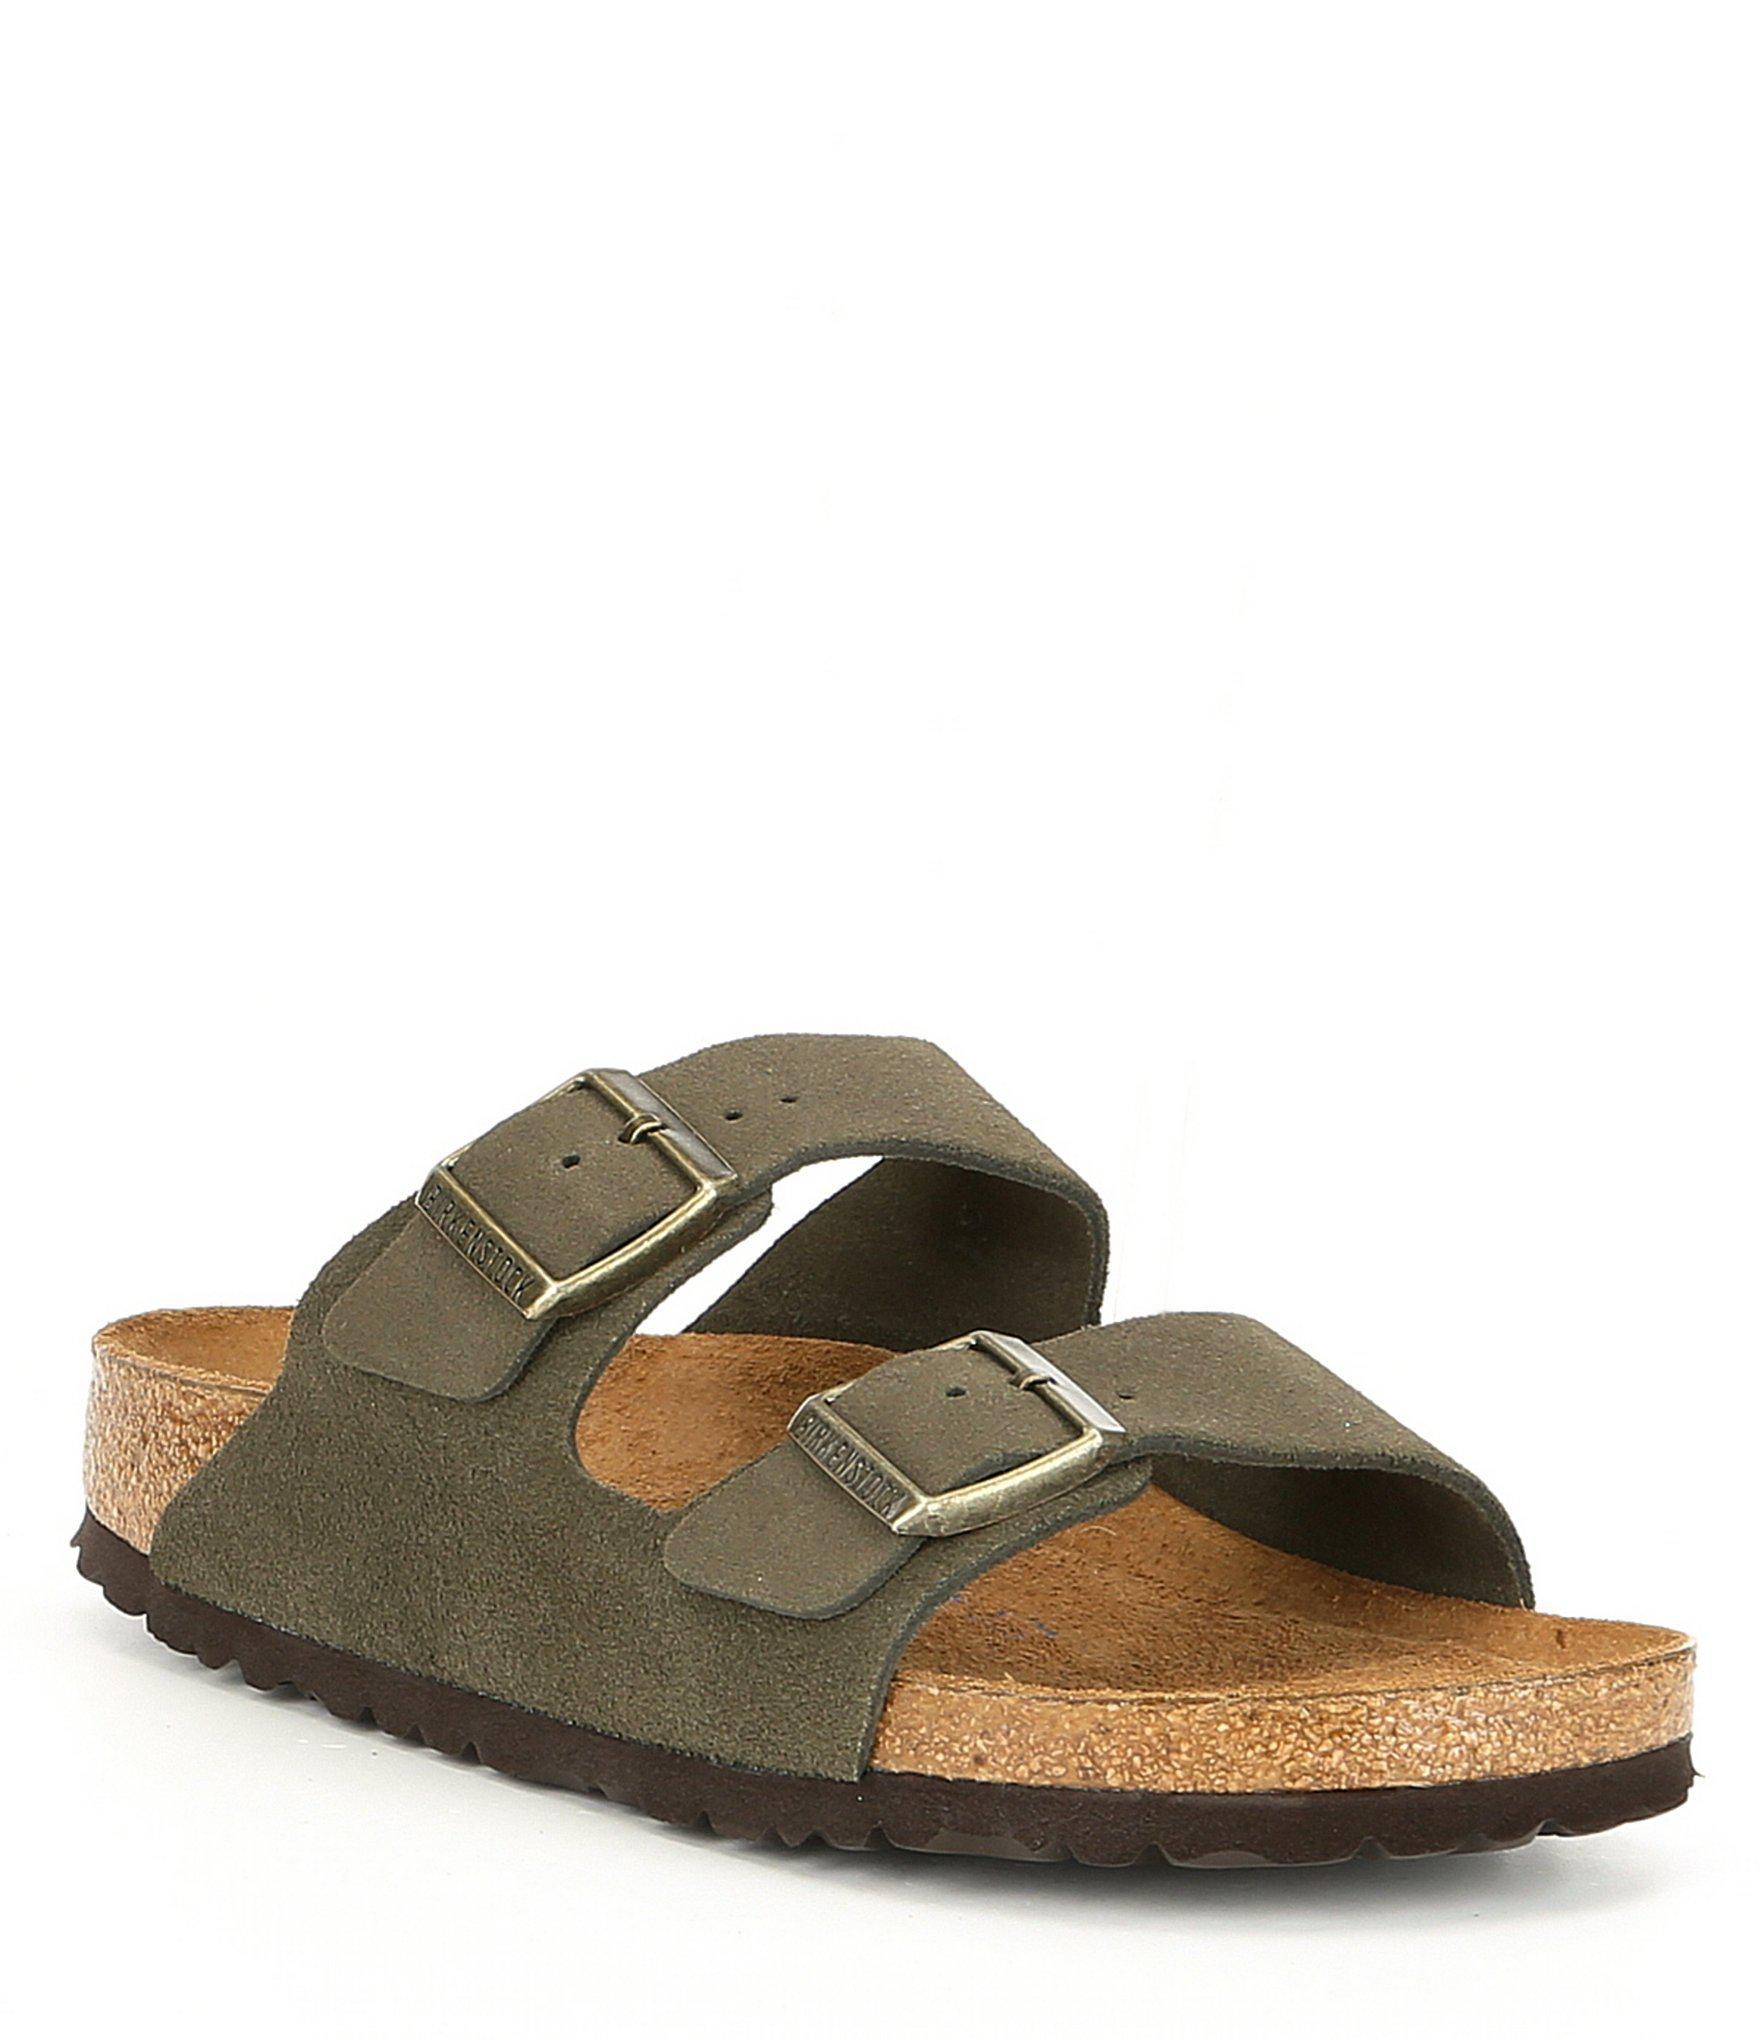 e4ff3eea995a Lyst - Birkenstock Arizona Soft Footbed Suede Slide Sandals